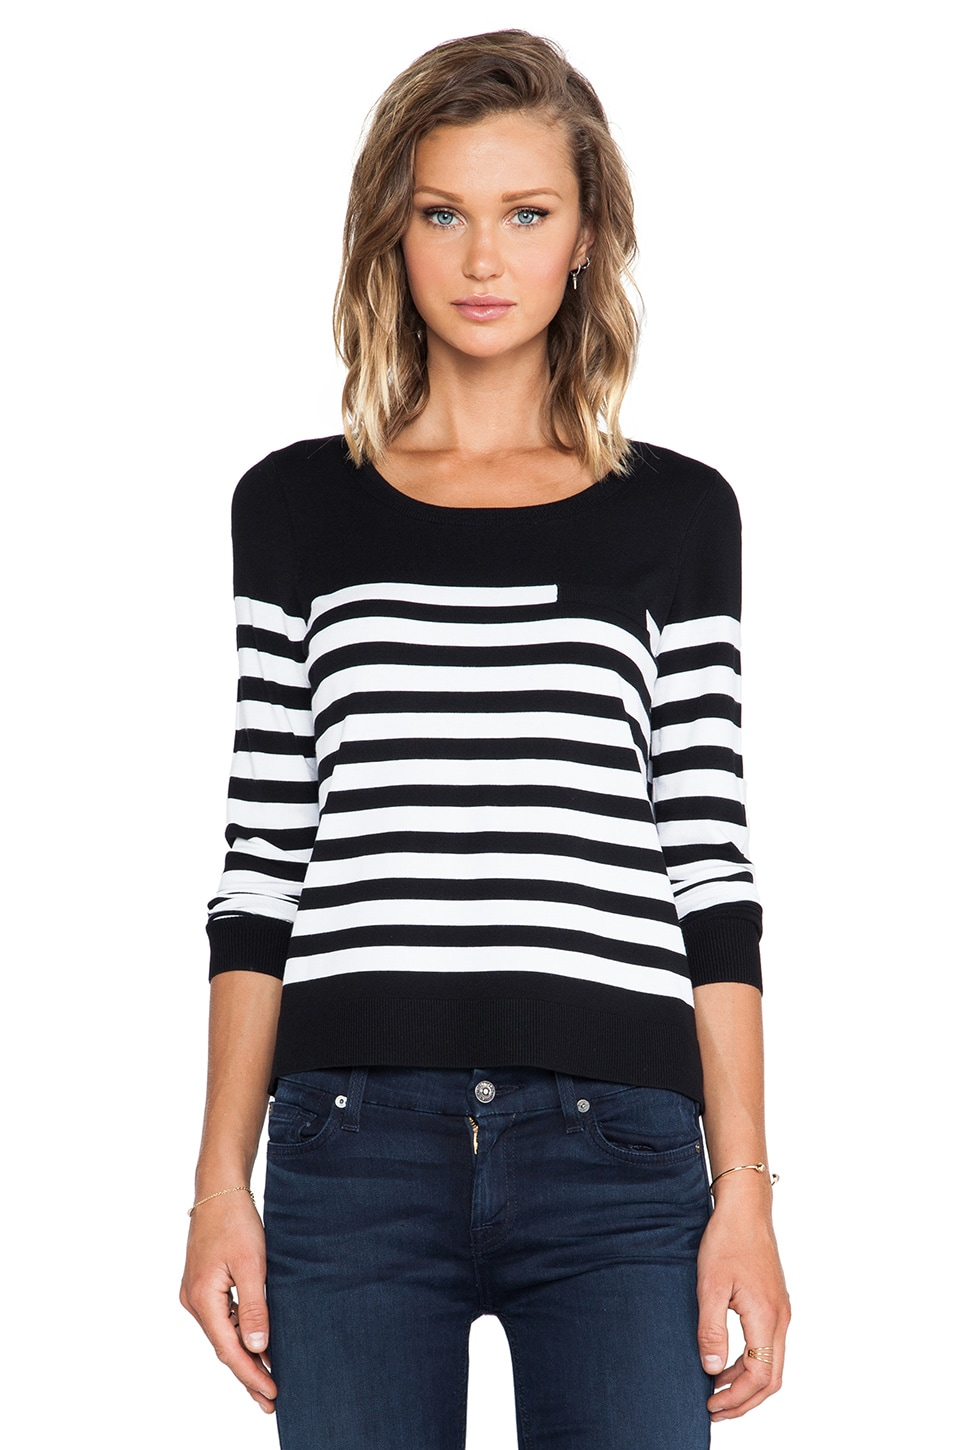 MILLY Classic Striped Sweater in Black & White